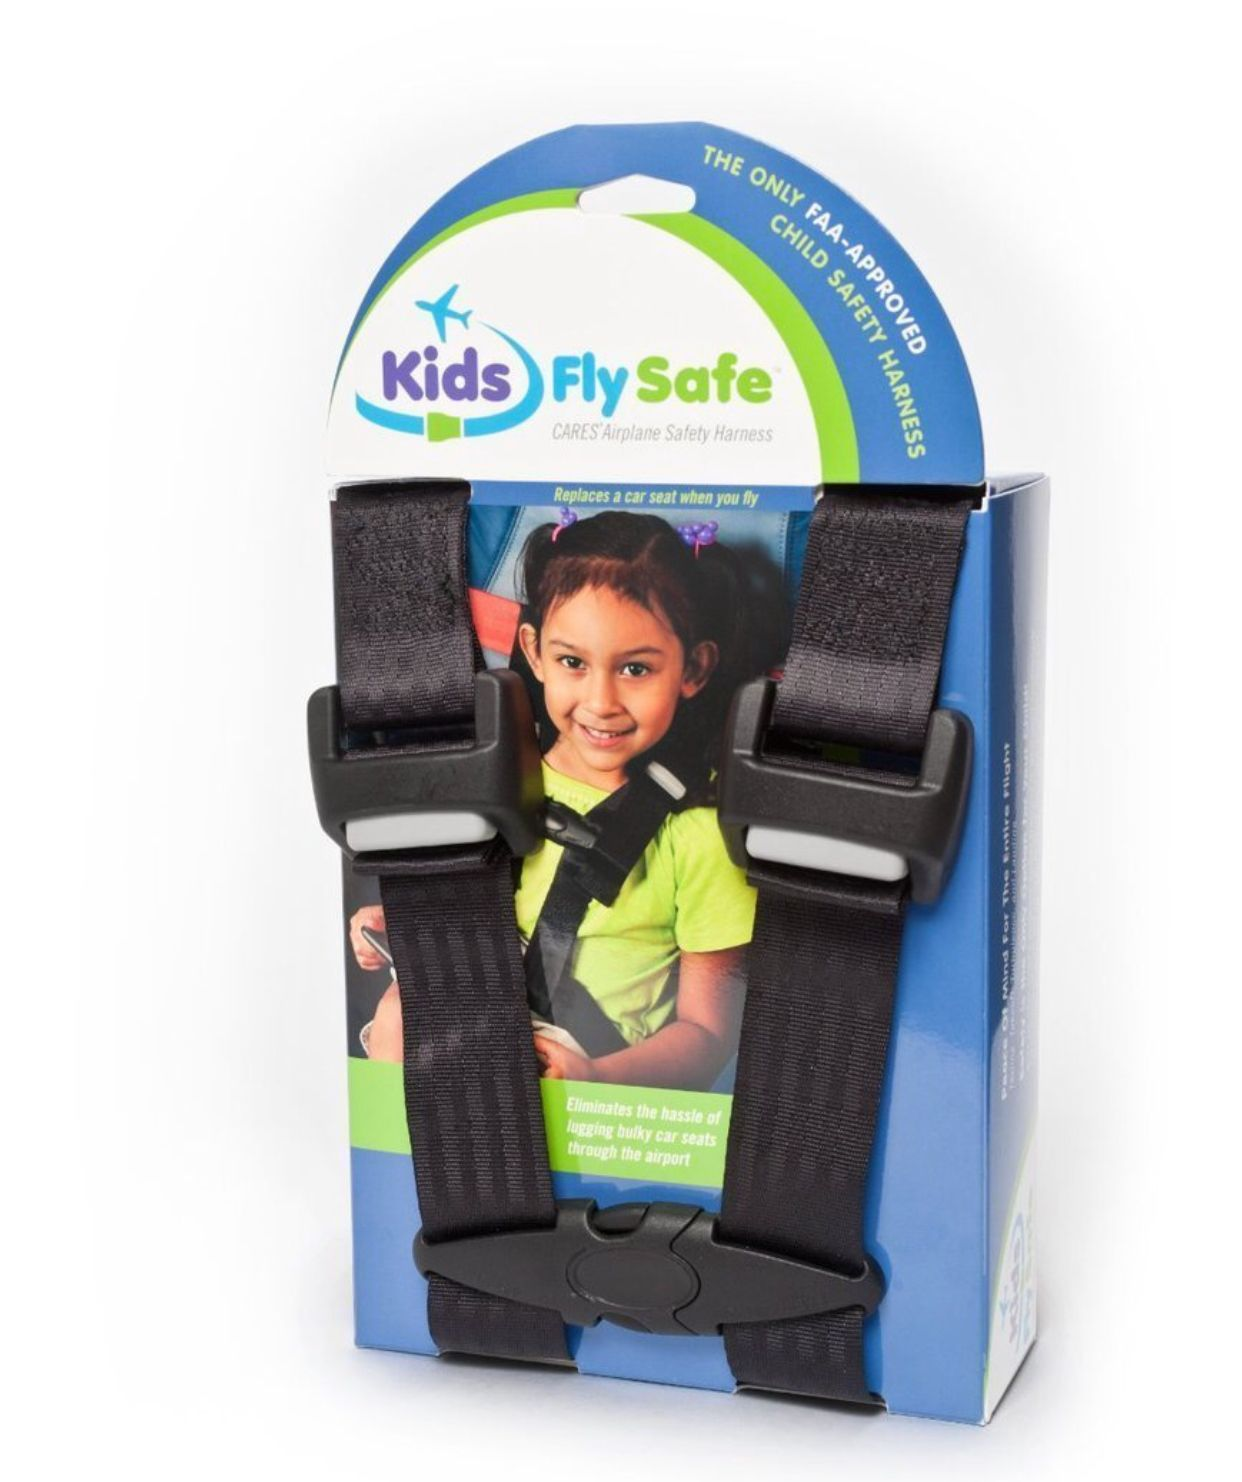 CAREs Child Airplane Travel Harness Cares Safety